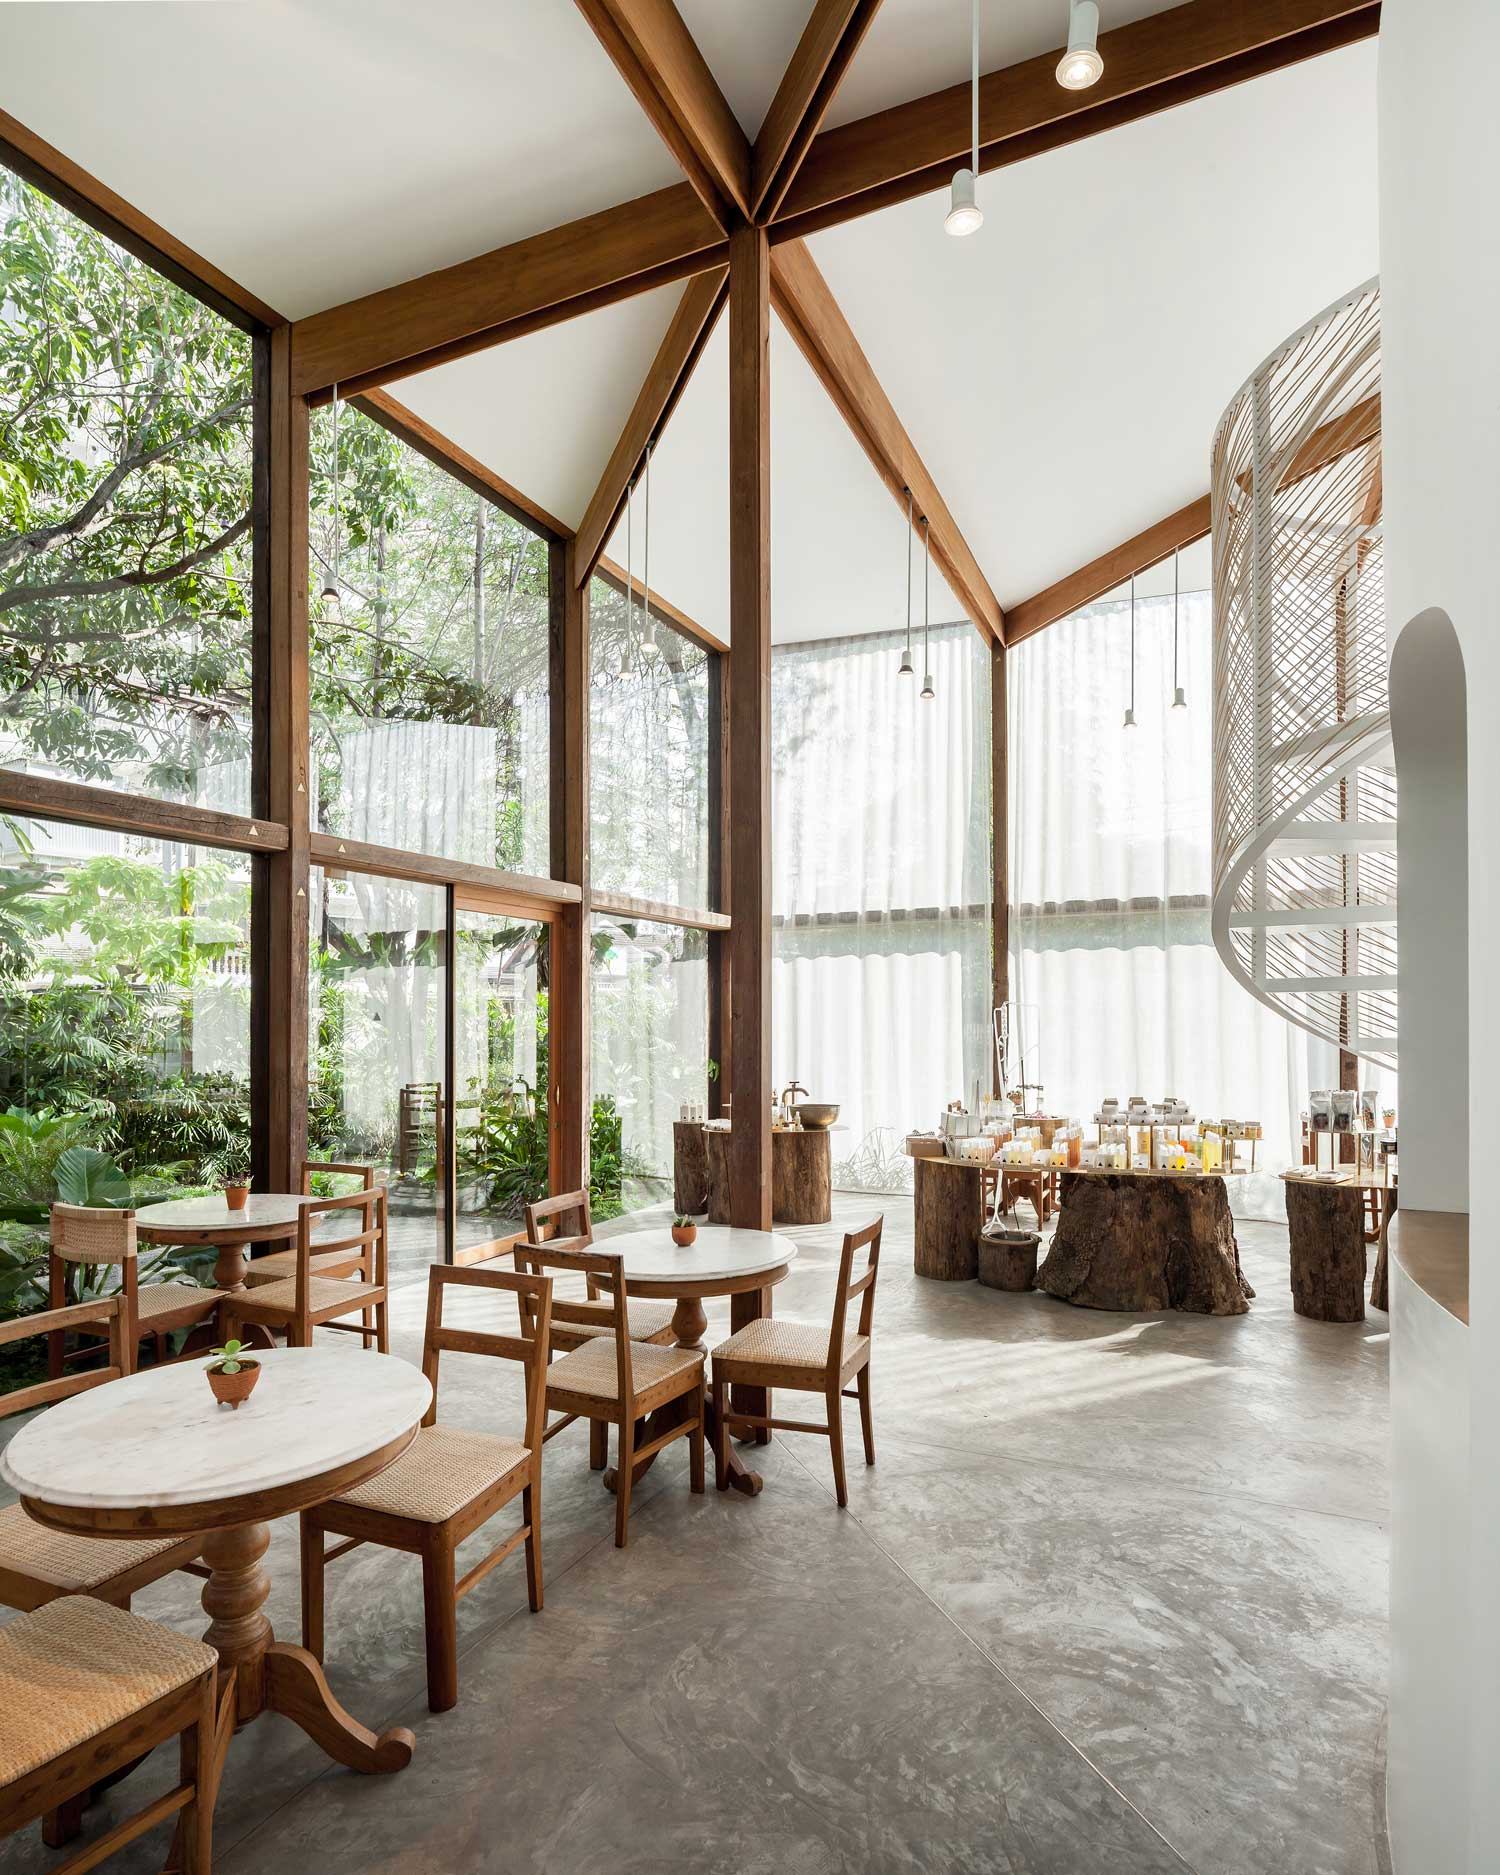 Patom Organic Living in Bangkok, Thailand by NITAPROW | Yellowtrace